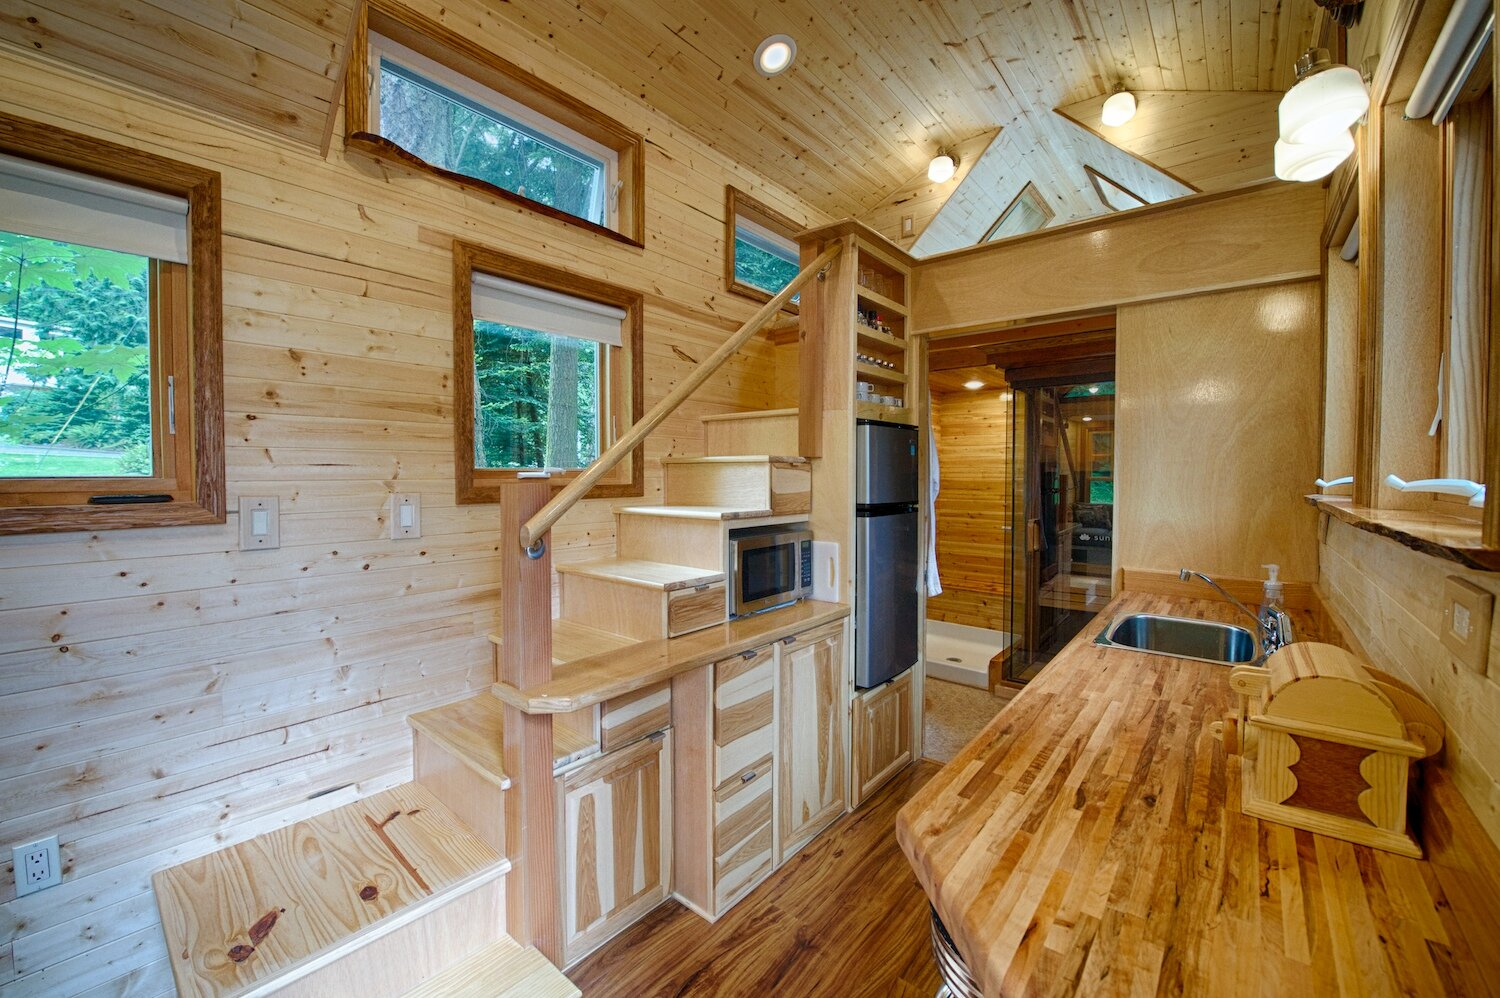 A tiny house with a sauna hope island cottages for Small cottages to build